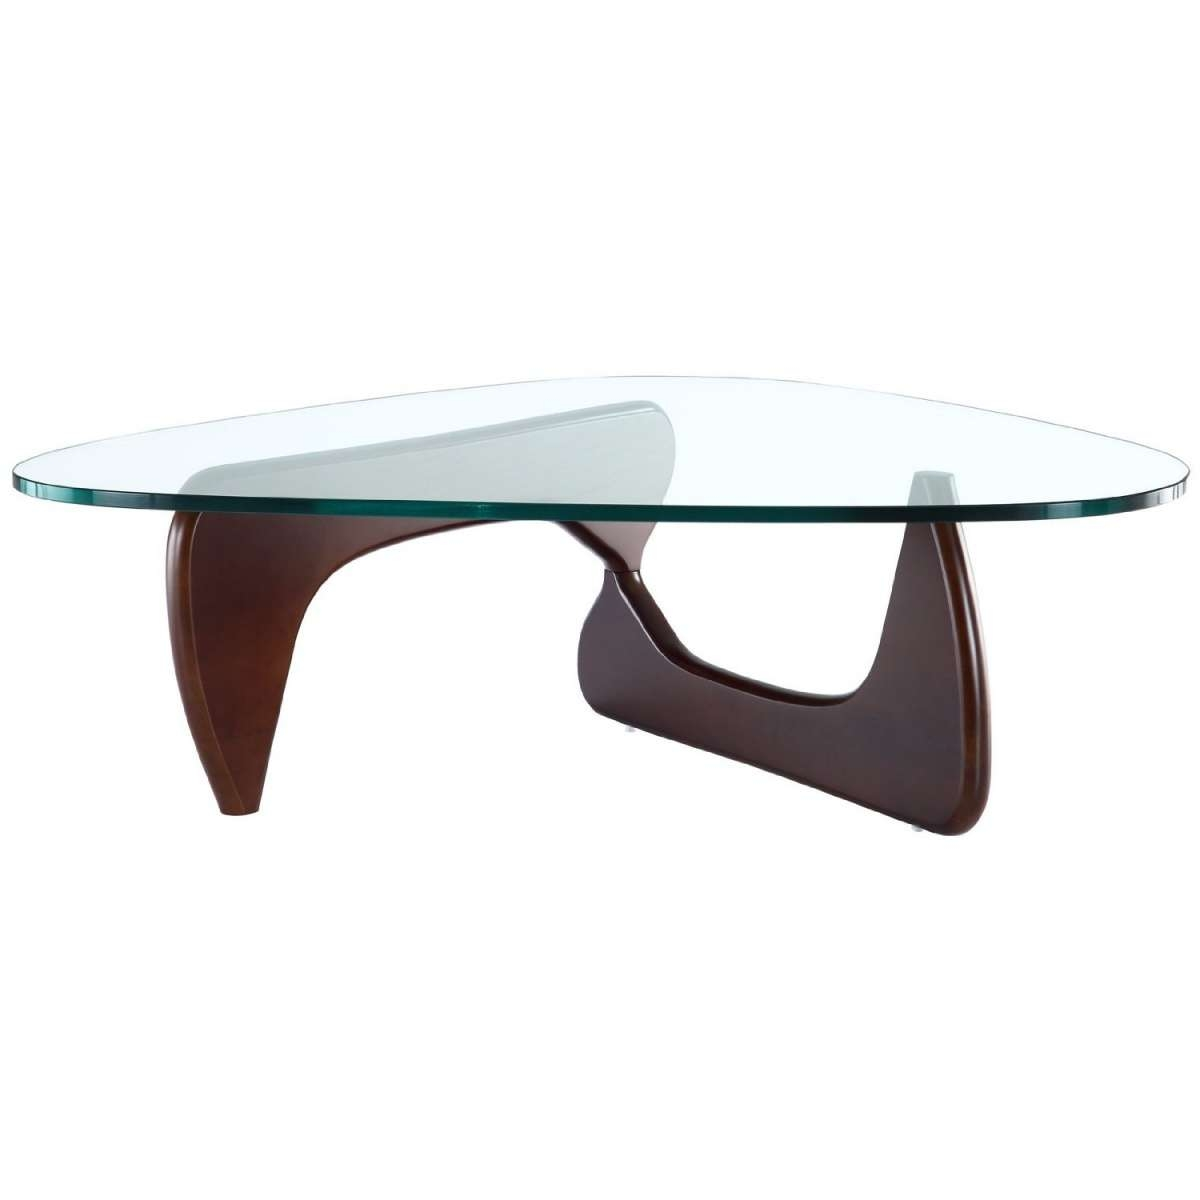 Inspiring Modern Glass Coffee Table As Fancy Furniture Styles Pertaining To Current Modern Glass Coffee Tables (View 8 of 20)